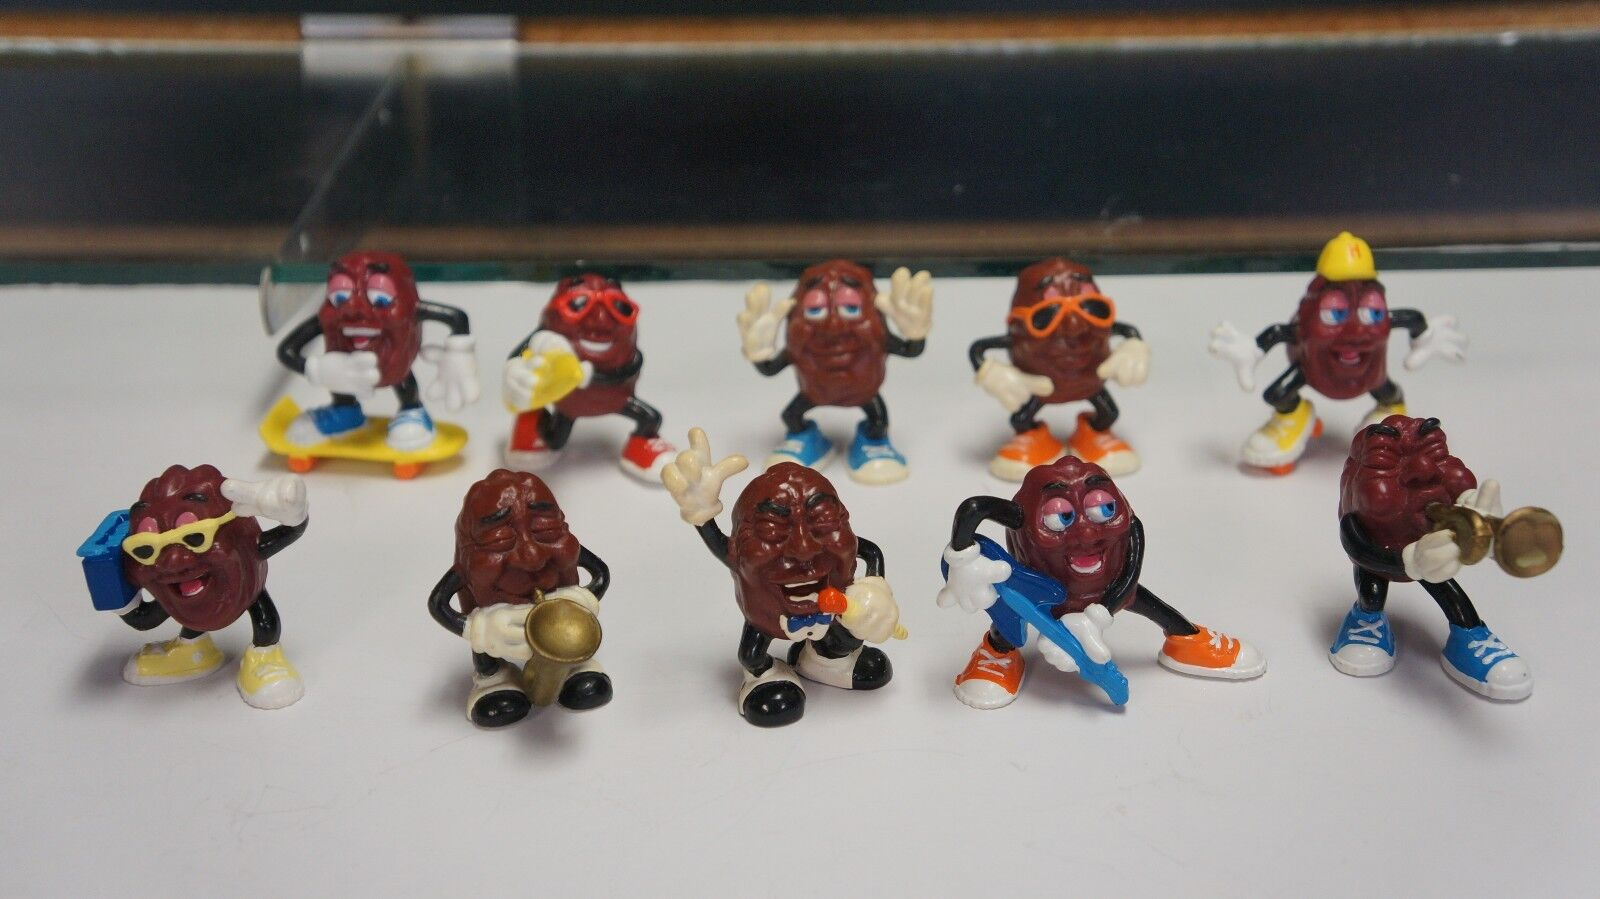 Lot Of 10 Figures Vintage California Raisins Figures 10 1988 Fbfb15